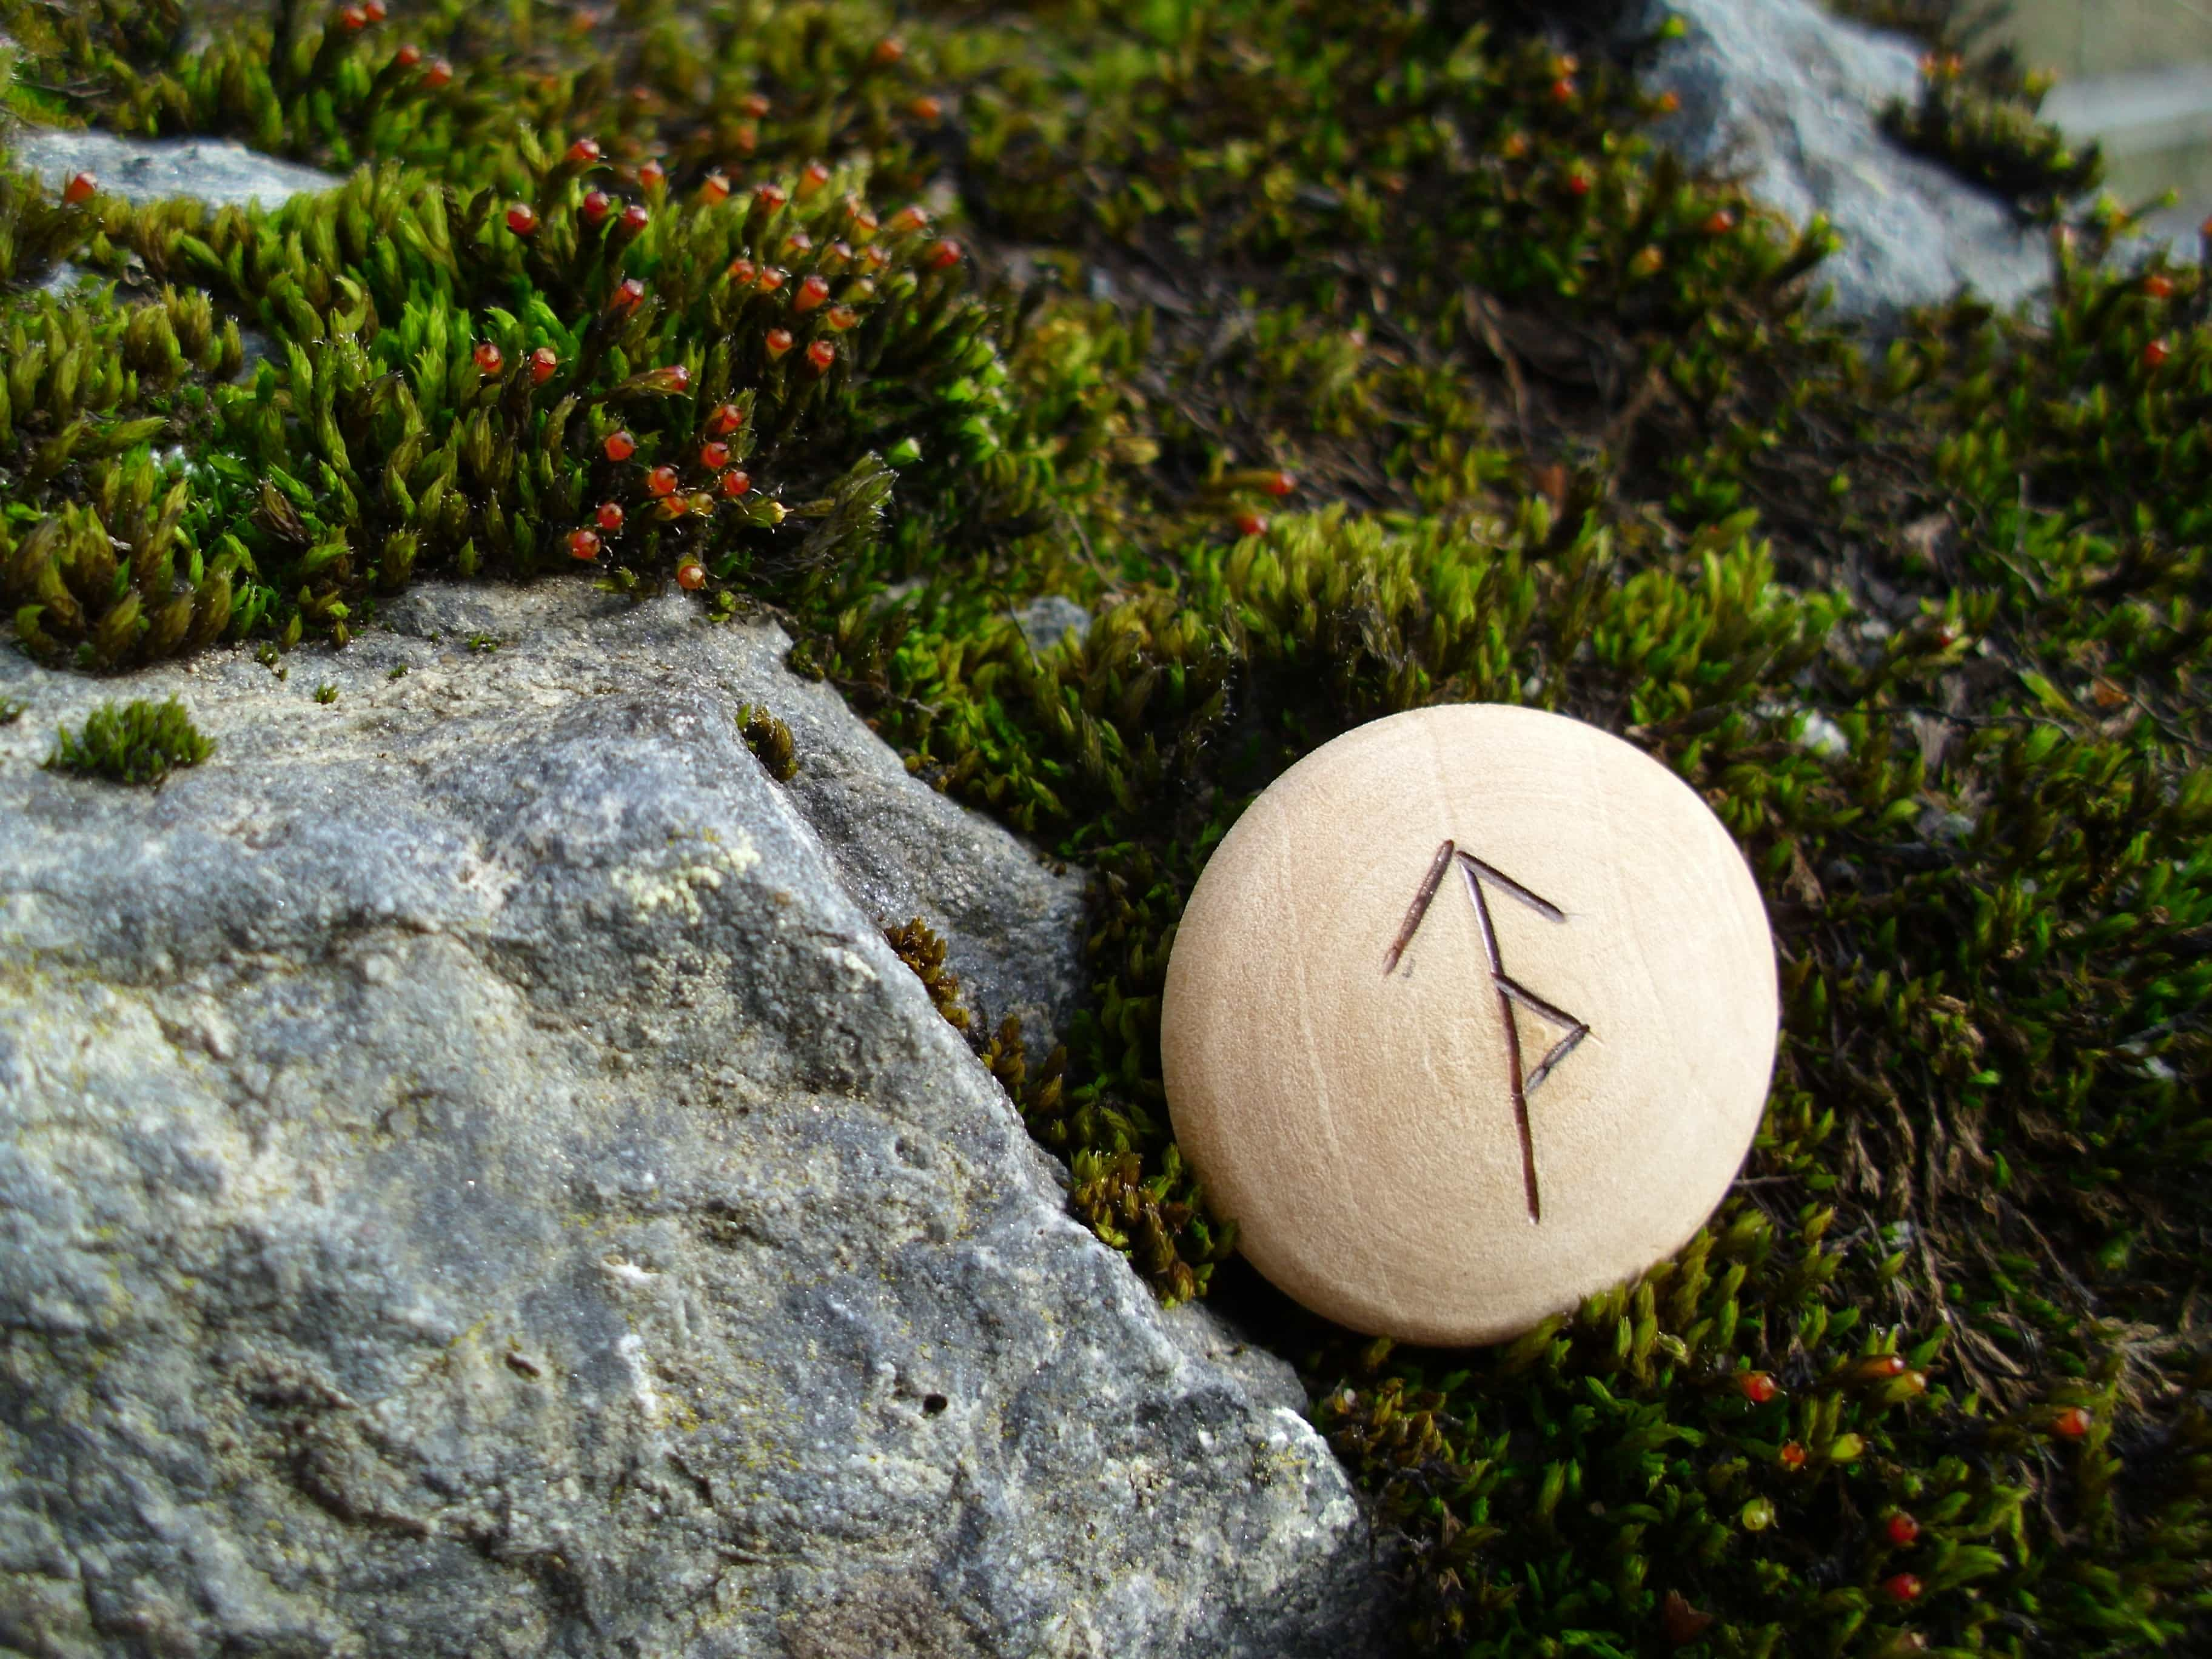 Pocket Rune for confidence - Wooden Rune Amulet - Selvtillit